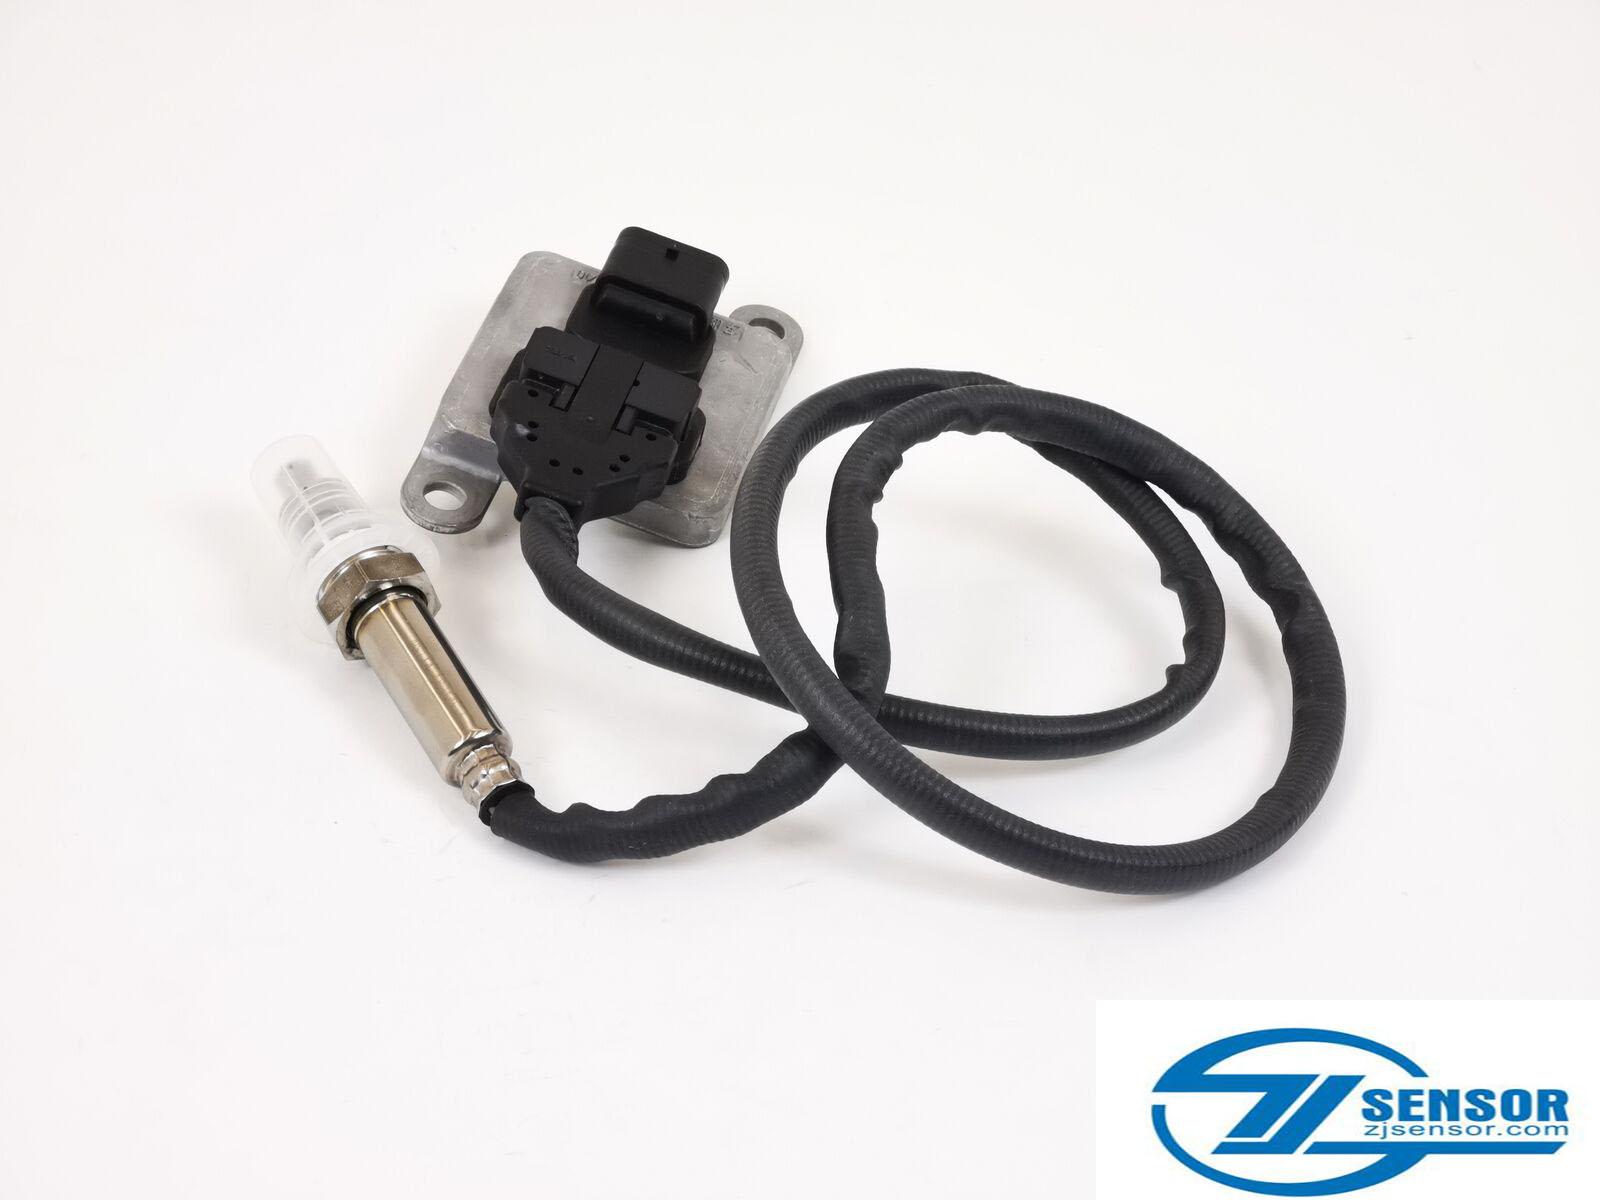 Auto Car Nitrogen Oxide (NOX) Sensor For Benz 5WK96683A